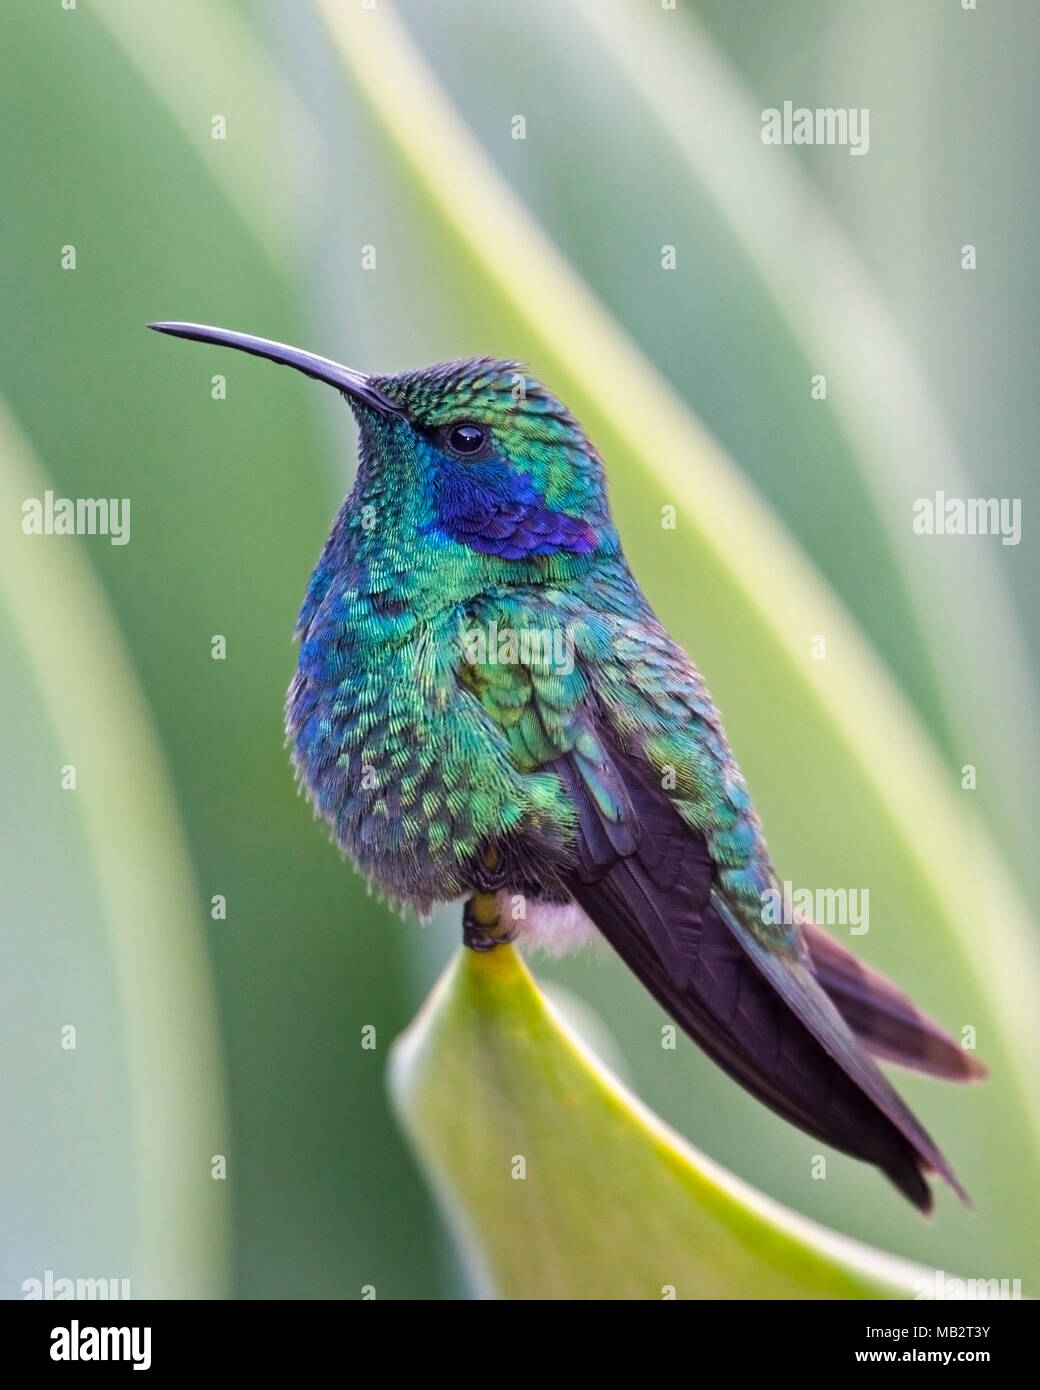 Lesser violet-ear hummingbird (Colibri cyanotus cabanidis) perched on green plant in tropical garden. - Stock Image